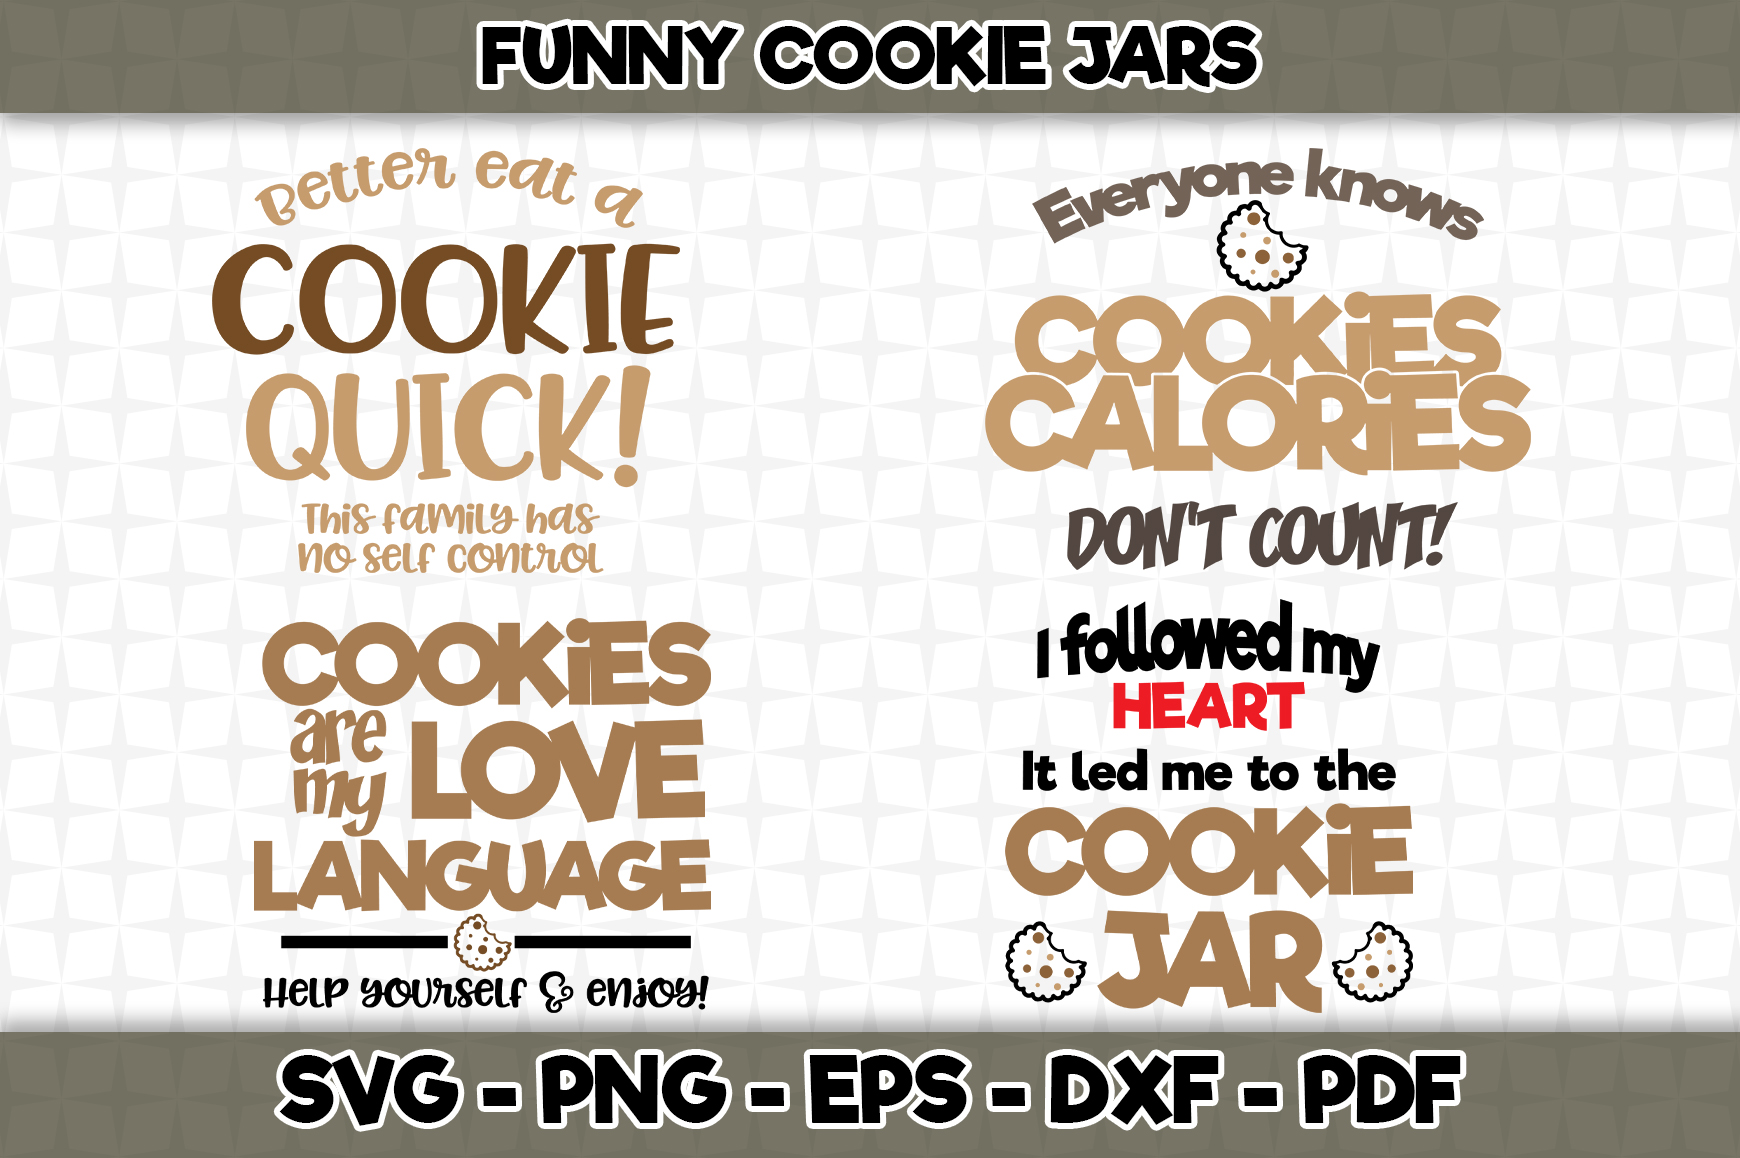 Download Free Funny Cookie Jars Bundle Graphic By Svgexpress Creative Fabrica for Cricut Explore, Silhouette and other cutting machines.